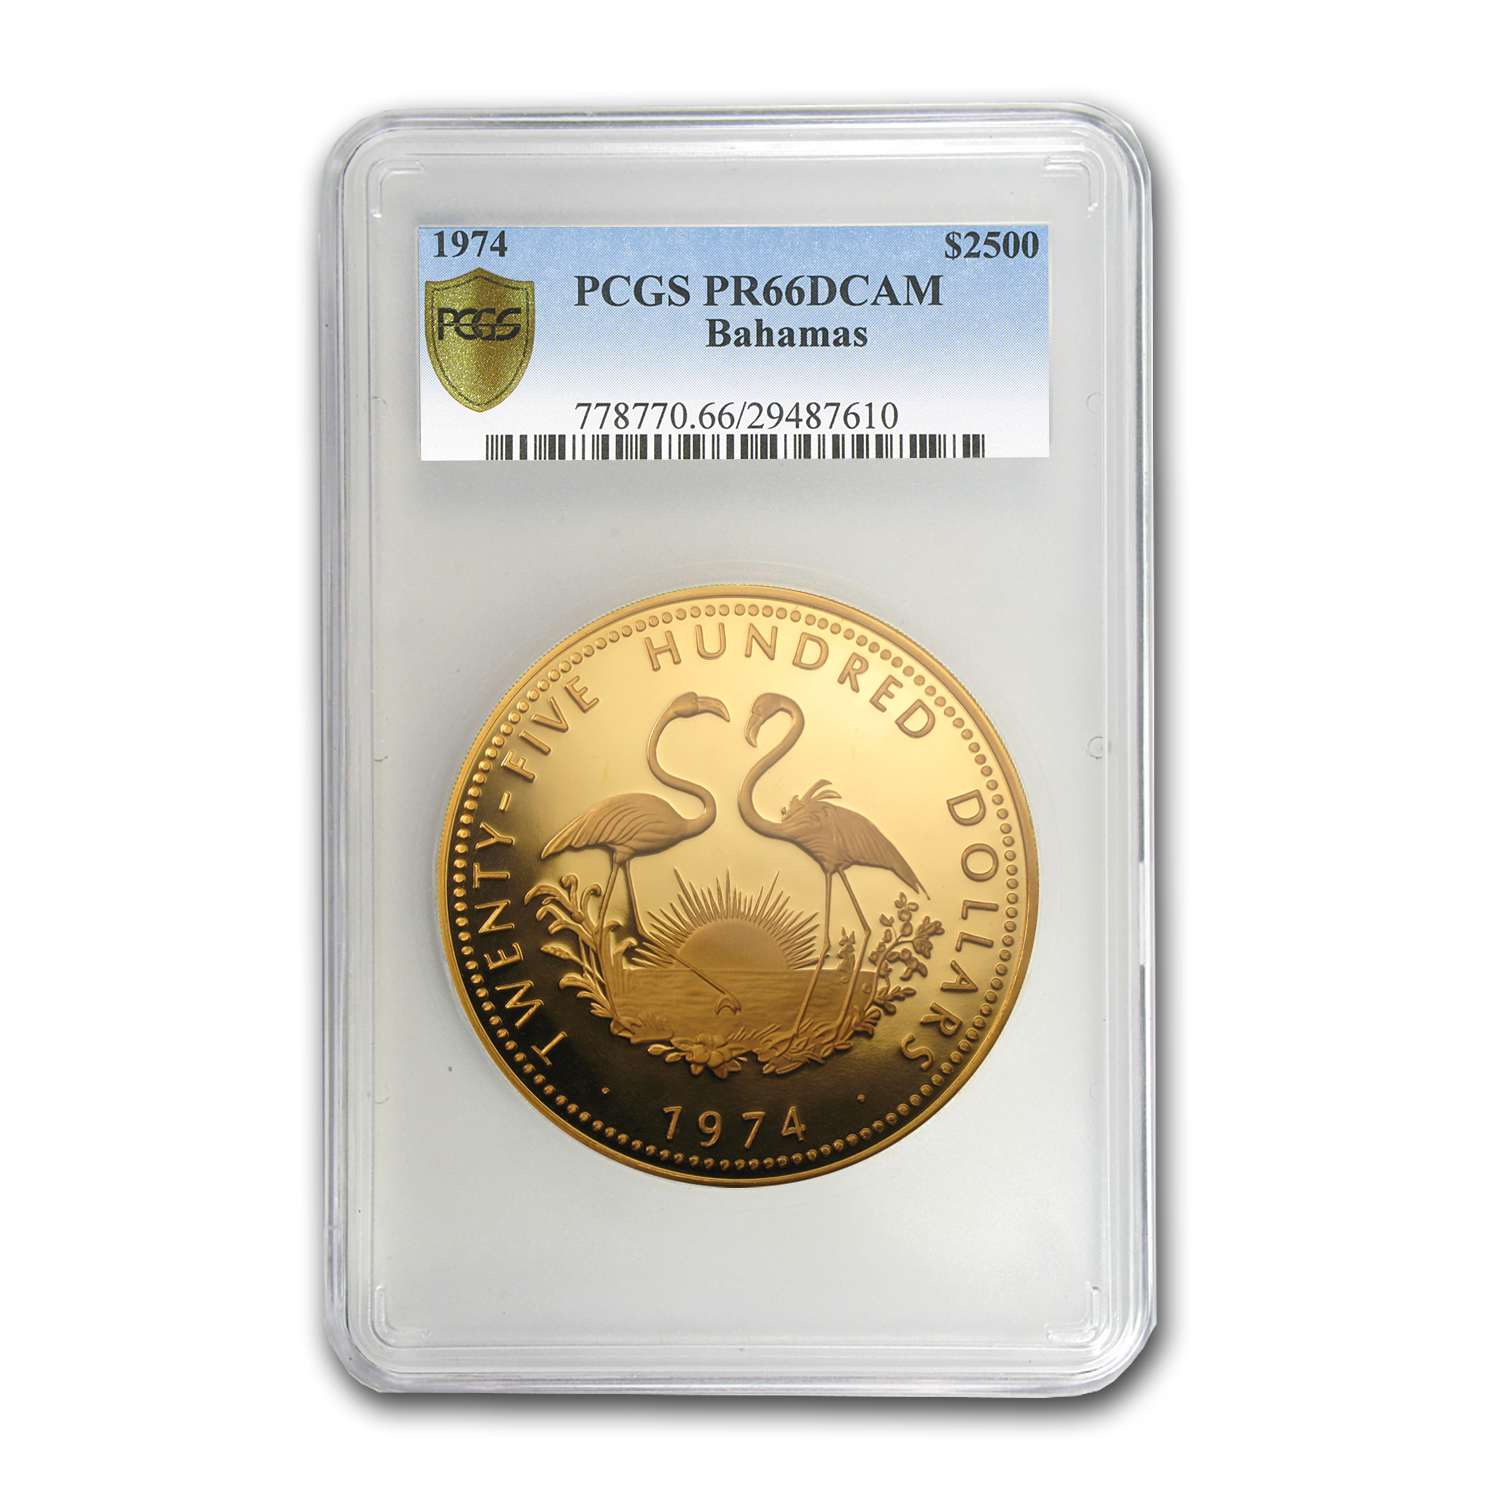 1974 Bahamas 12 oz Proof Gold $2500 PF-66 PCGS